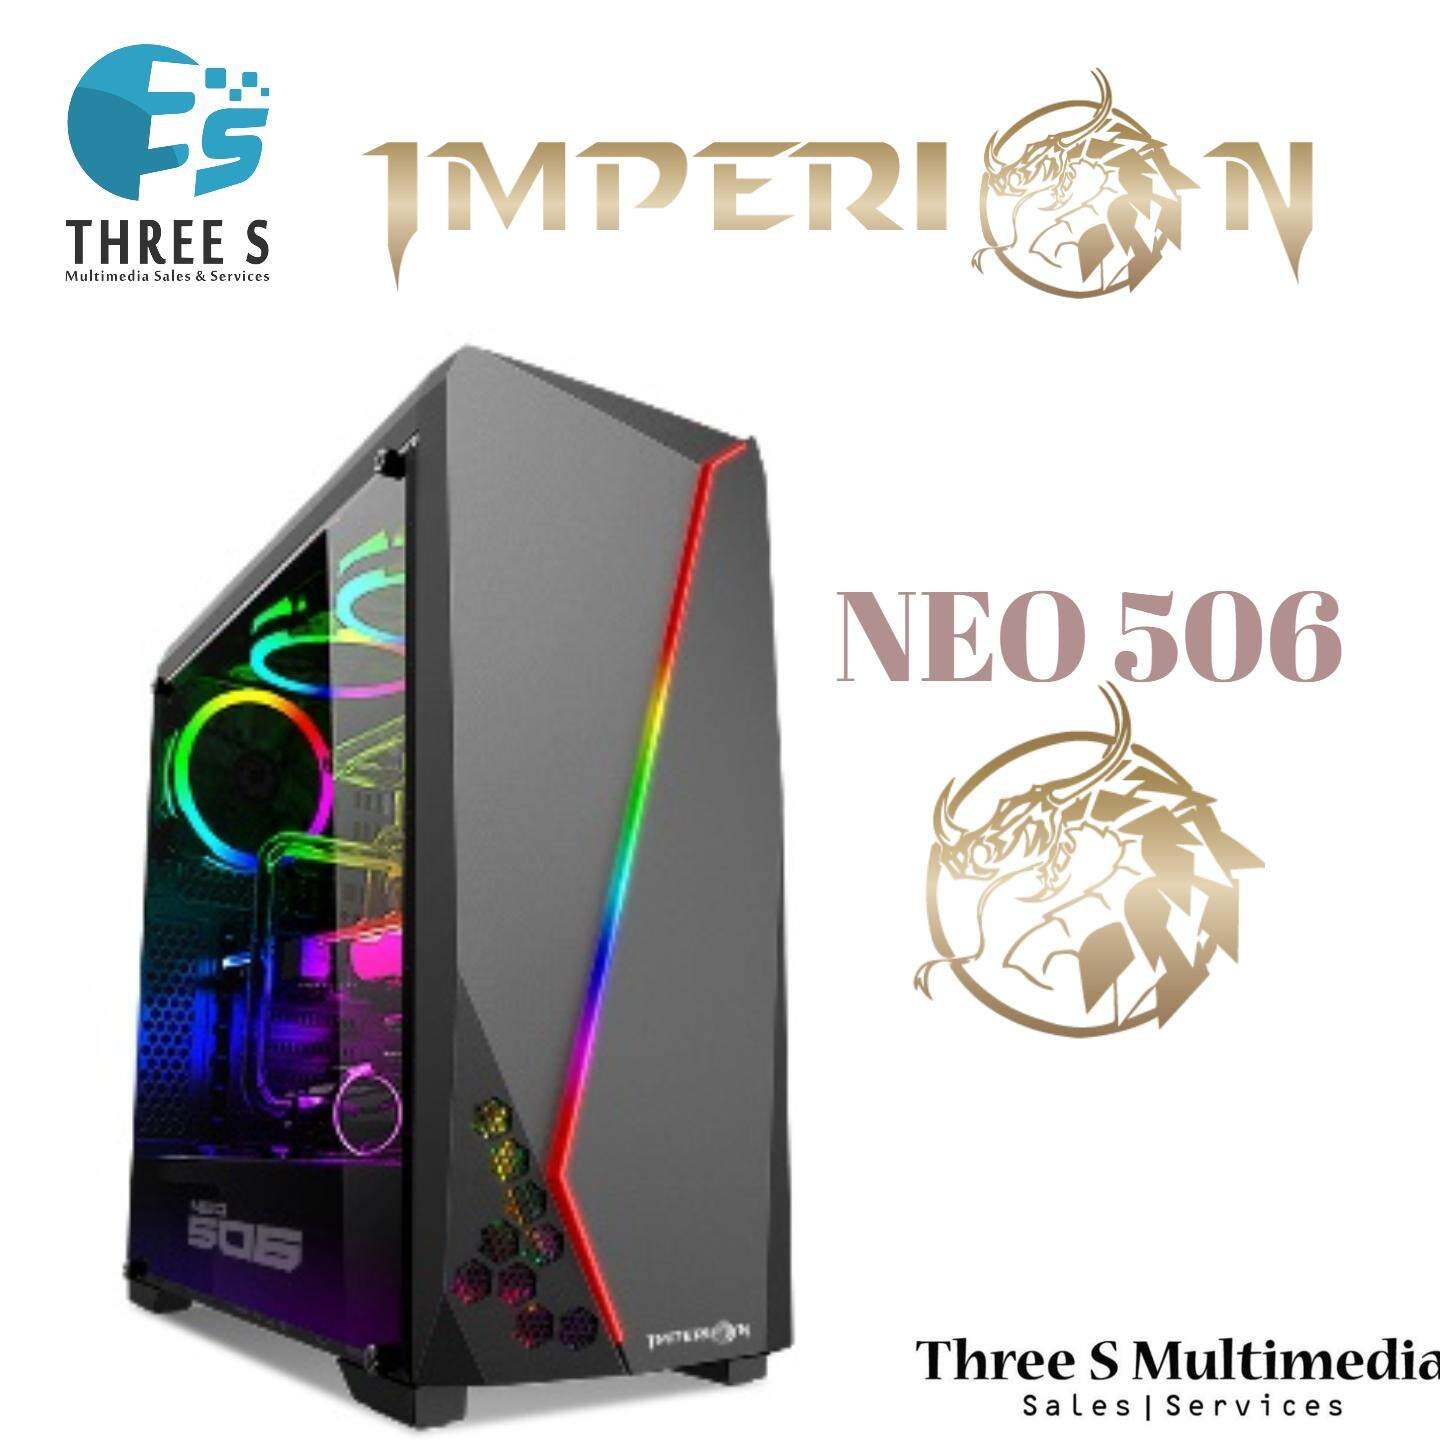 Imperion Neo 506 Gaming Computer Case RGB Light